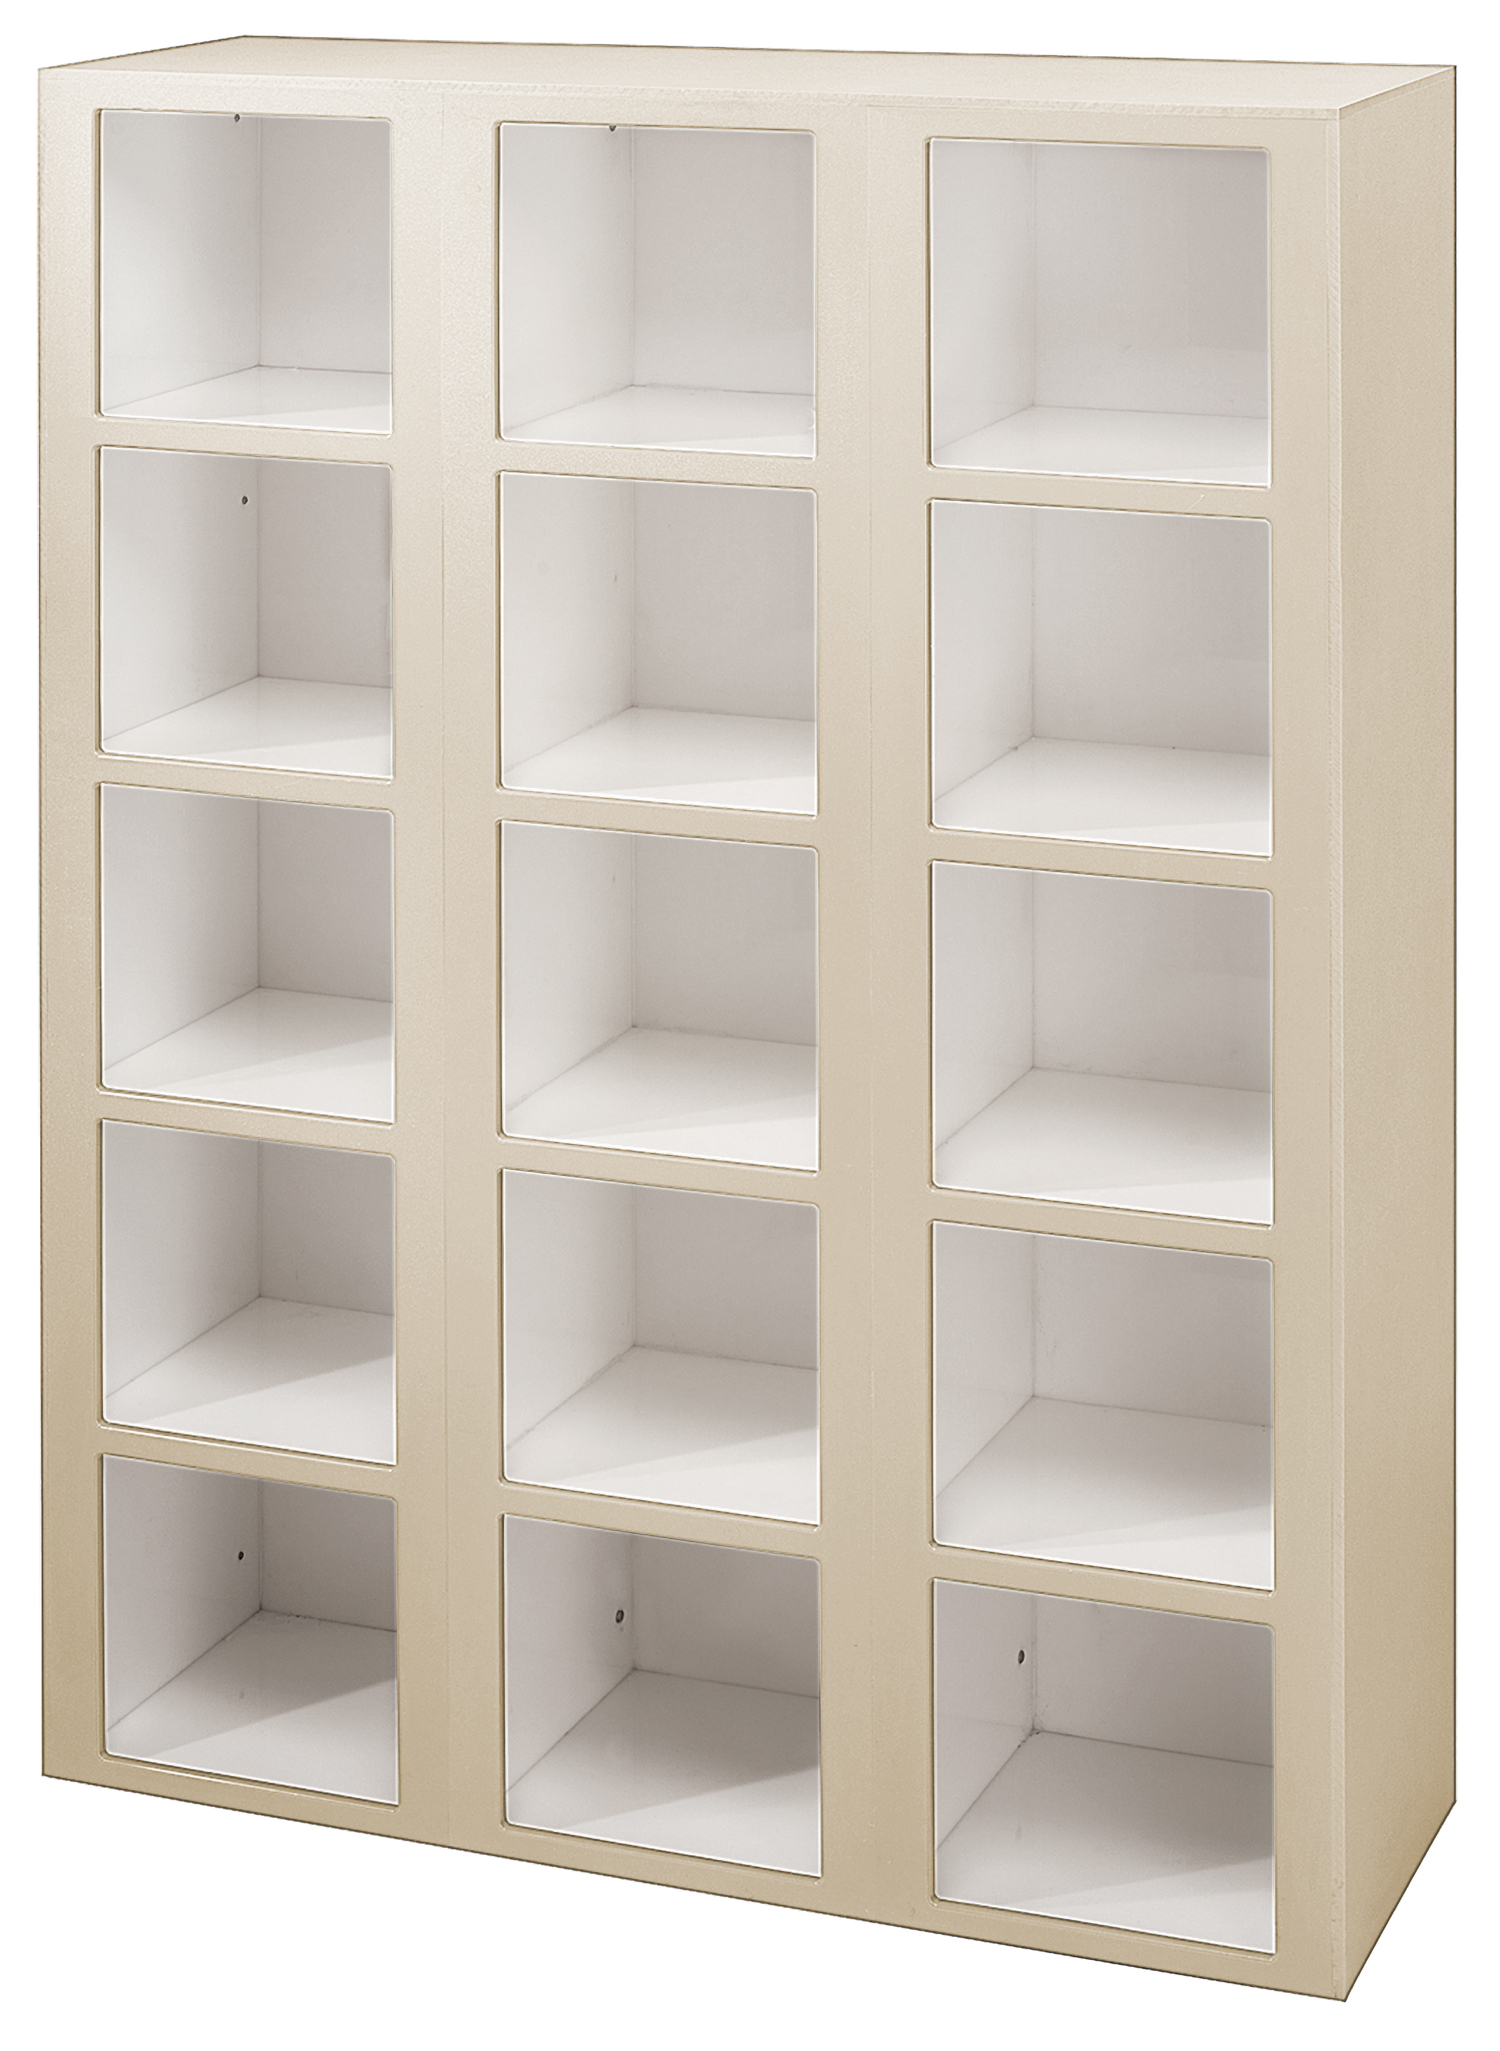 ... Solid Plastic Cubby Organizer Storage Systems  sc 1 st  XPB Lockers & Cubby Organizer Storage Systems are solid plastic heavy duty open ...